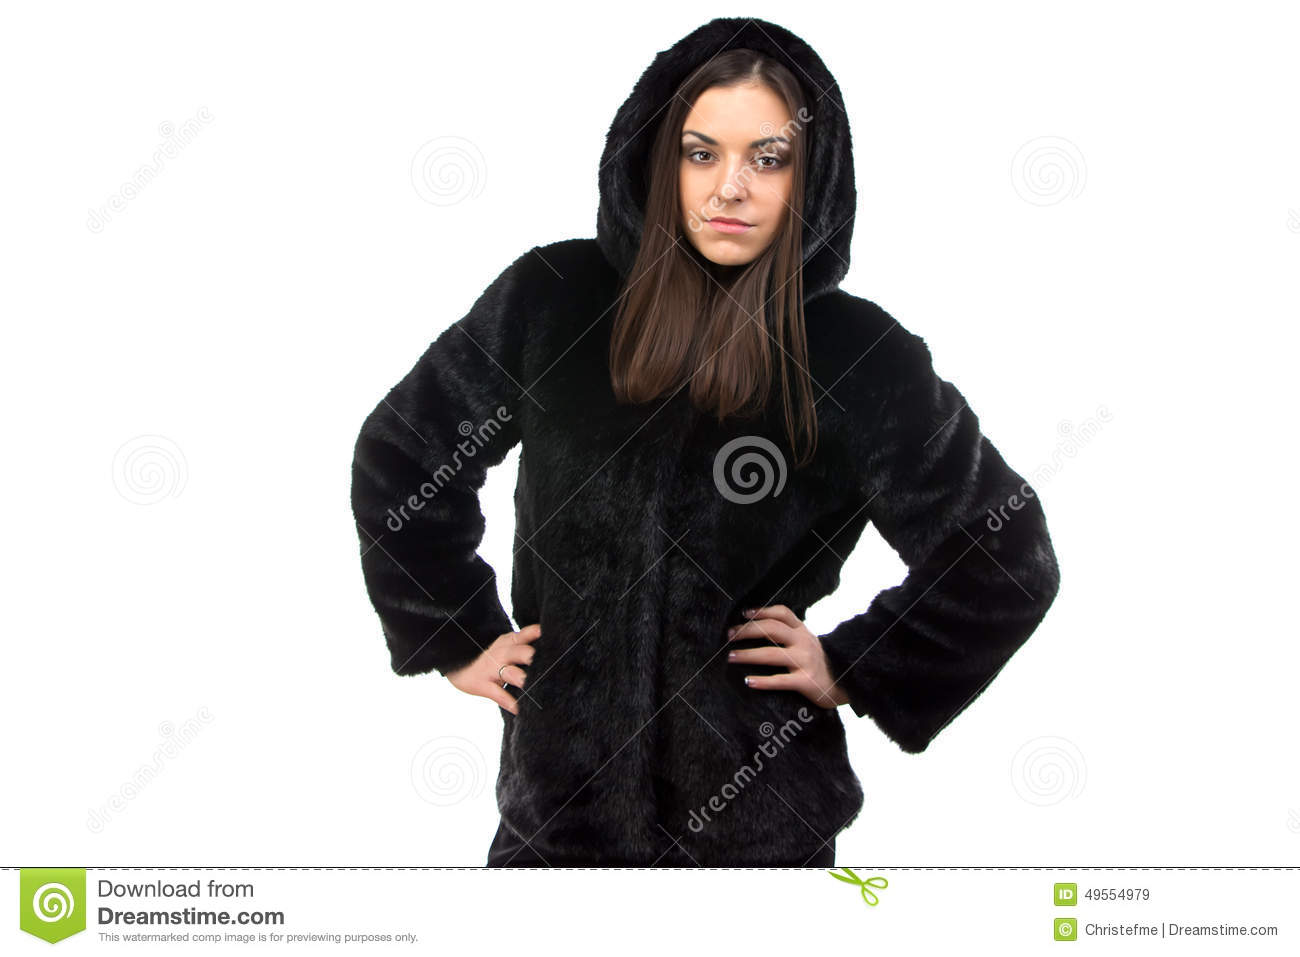 Photo Of Woman In Black Fur Coat With Hood Stock Photo - Image